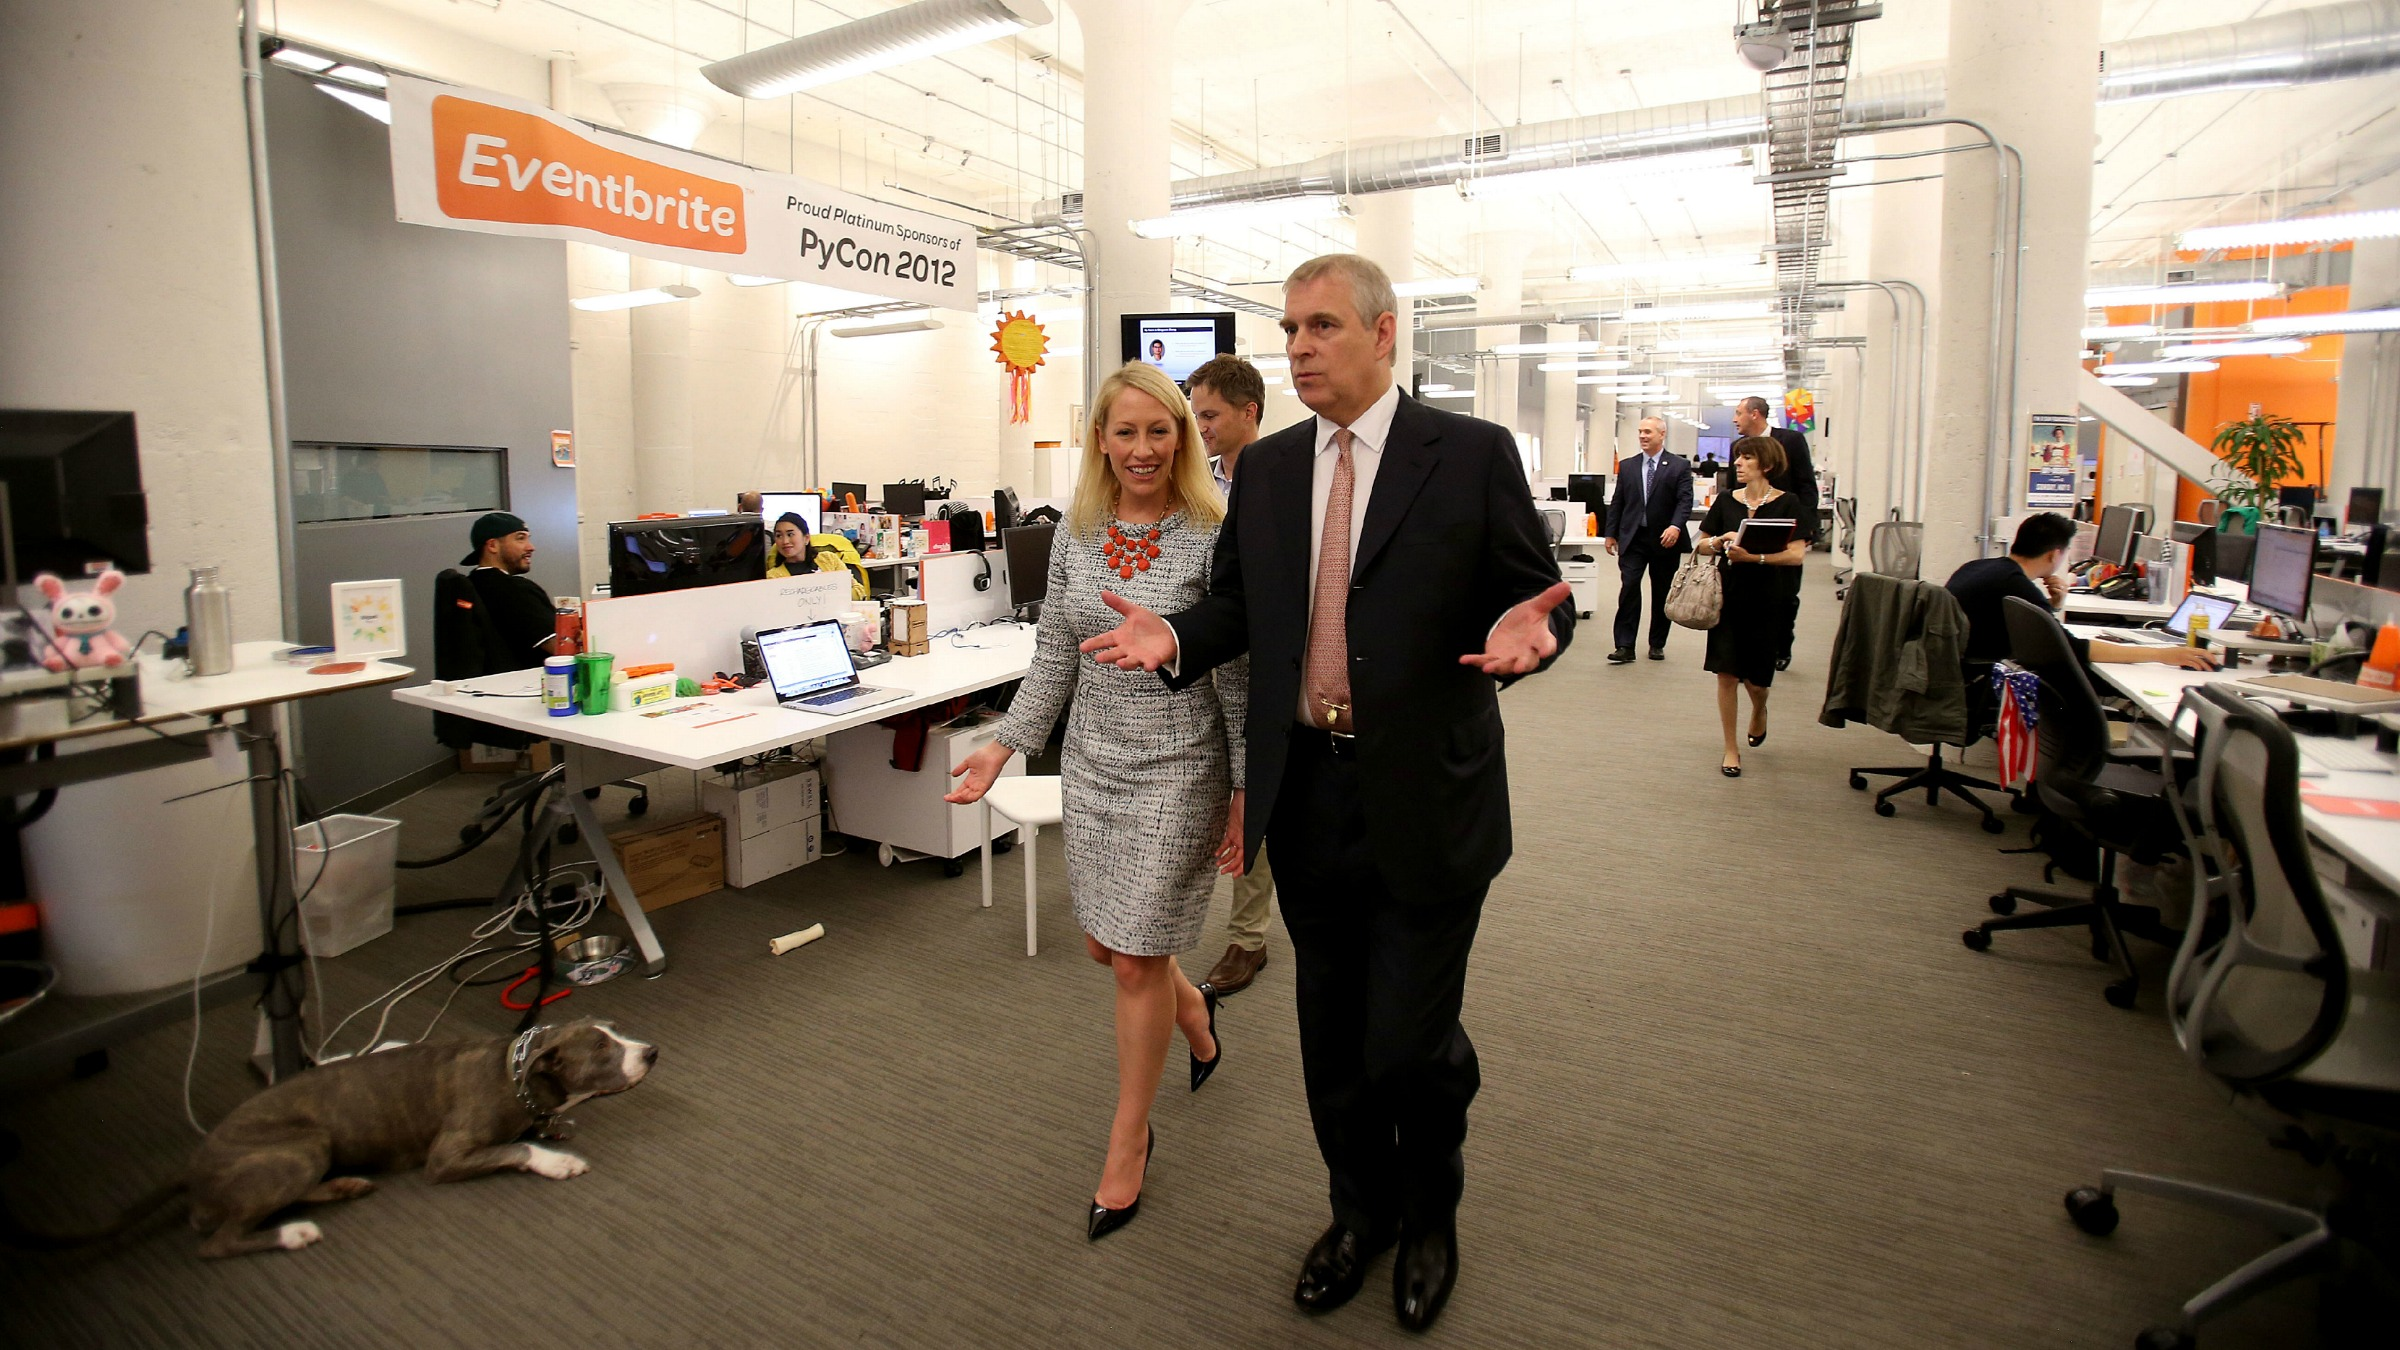 Prince Andrew, Duke of York is seen visting Evenbrite with founders Julia and Kevin Hartz, on Tuesday, June 26, 2013 in San Francisco, CA.  (Jed Jacobsohn/AP Images for Eventbrite)